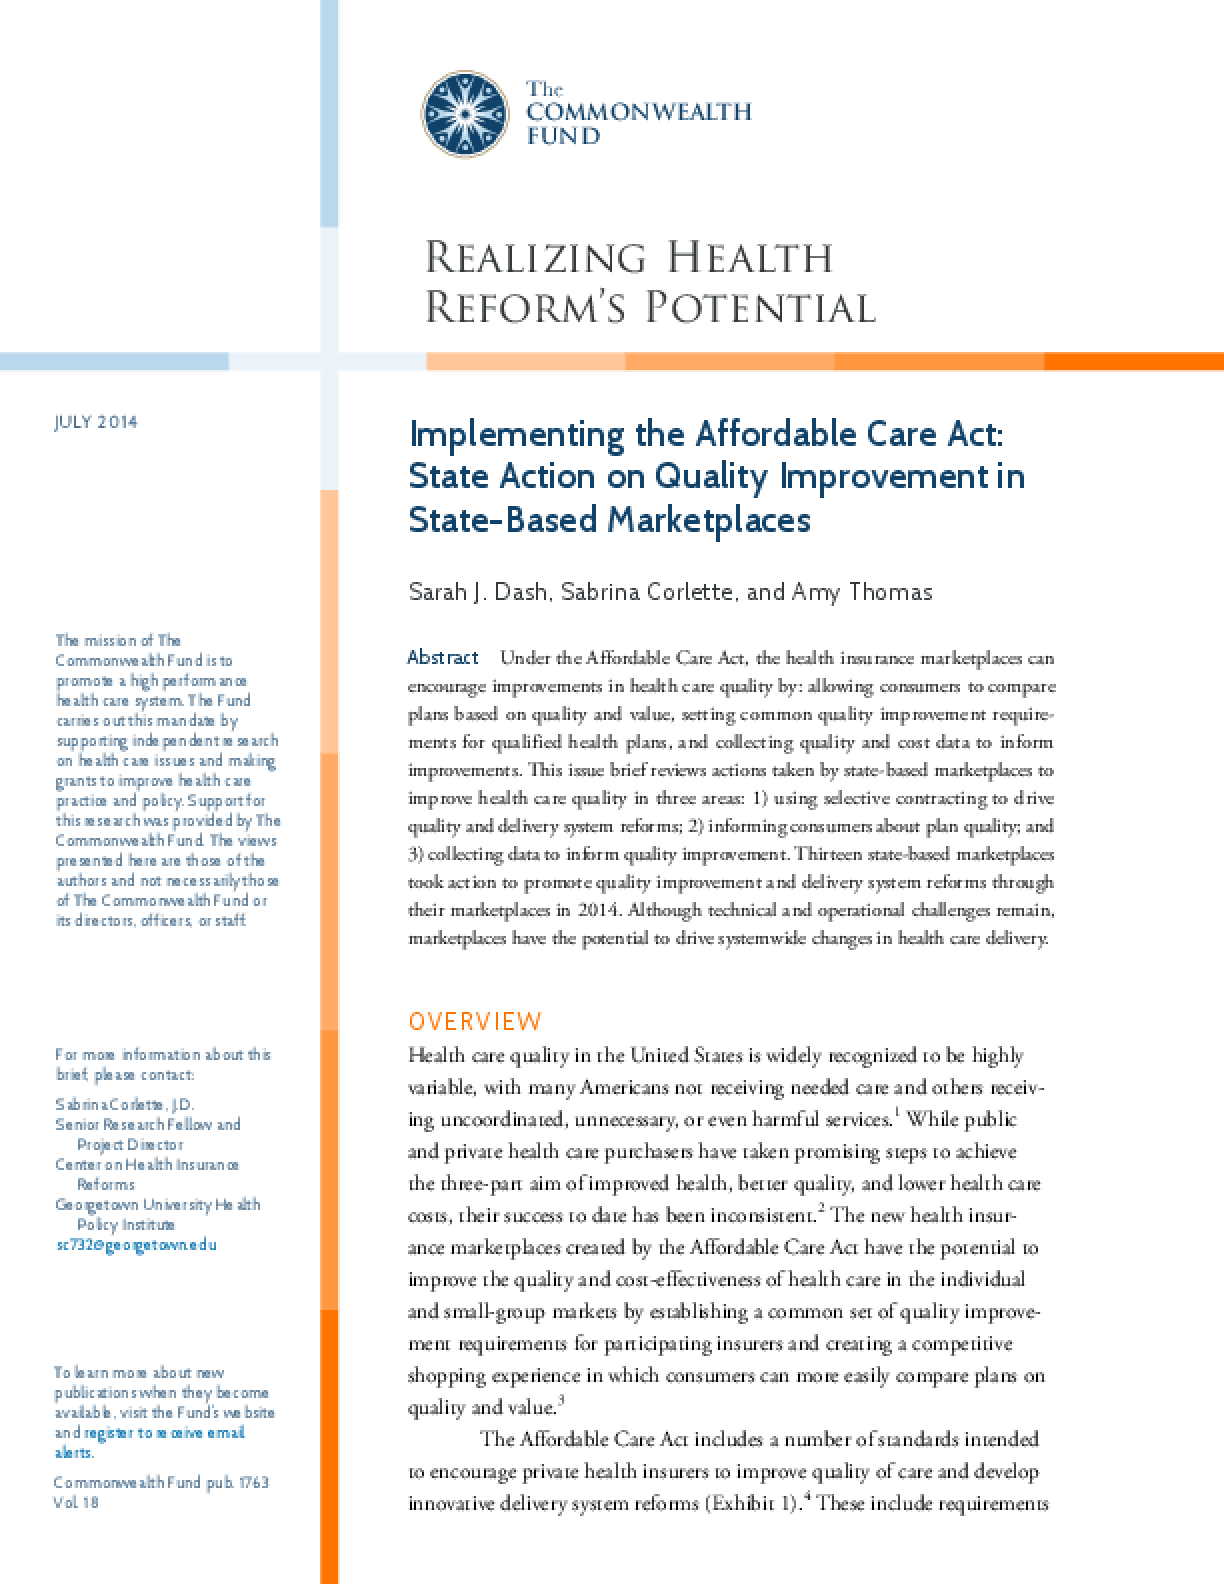 Implementing the Affordable Care Act: State Action on Quality Improvement in State-Based Marketplaces